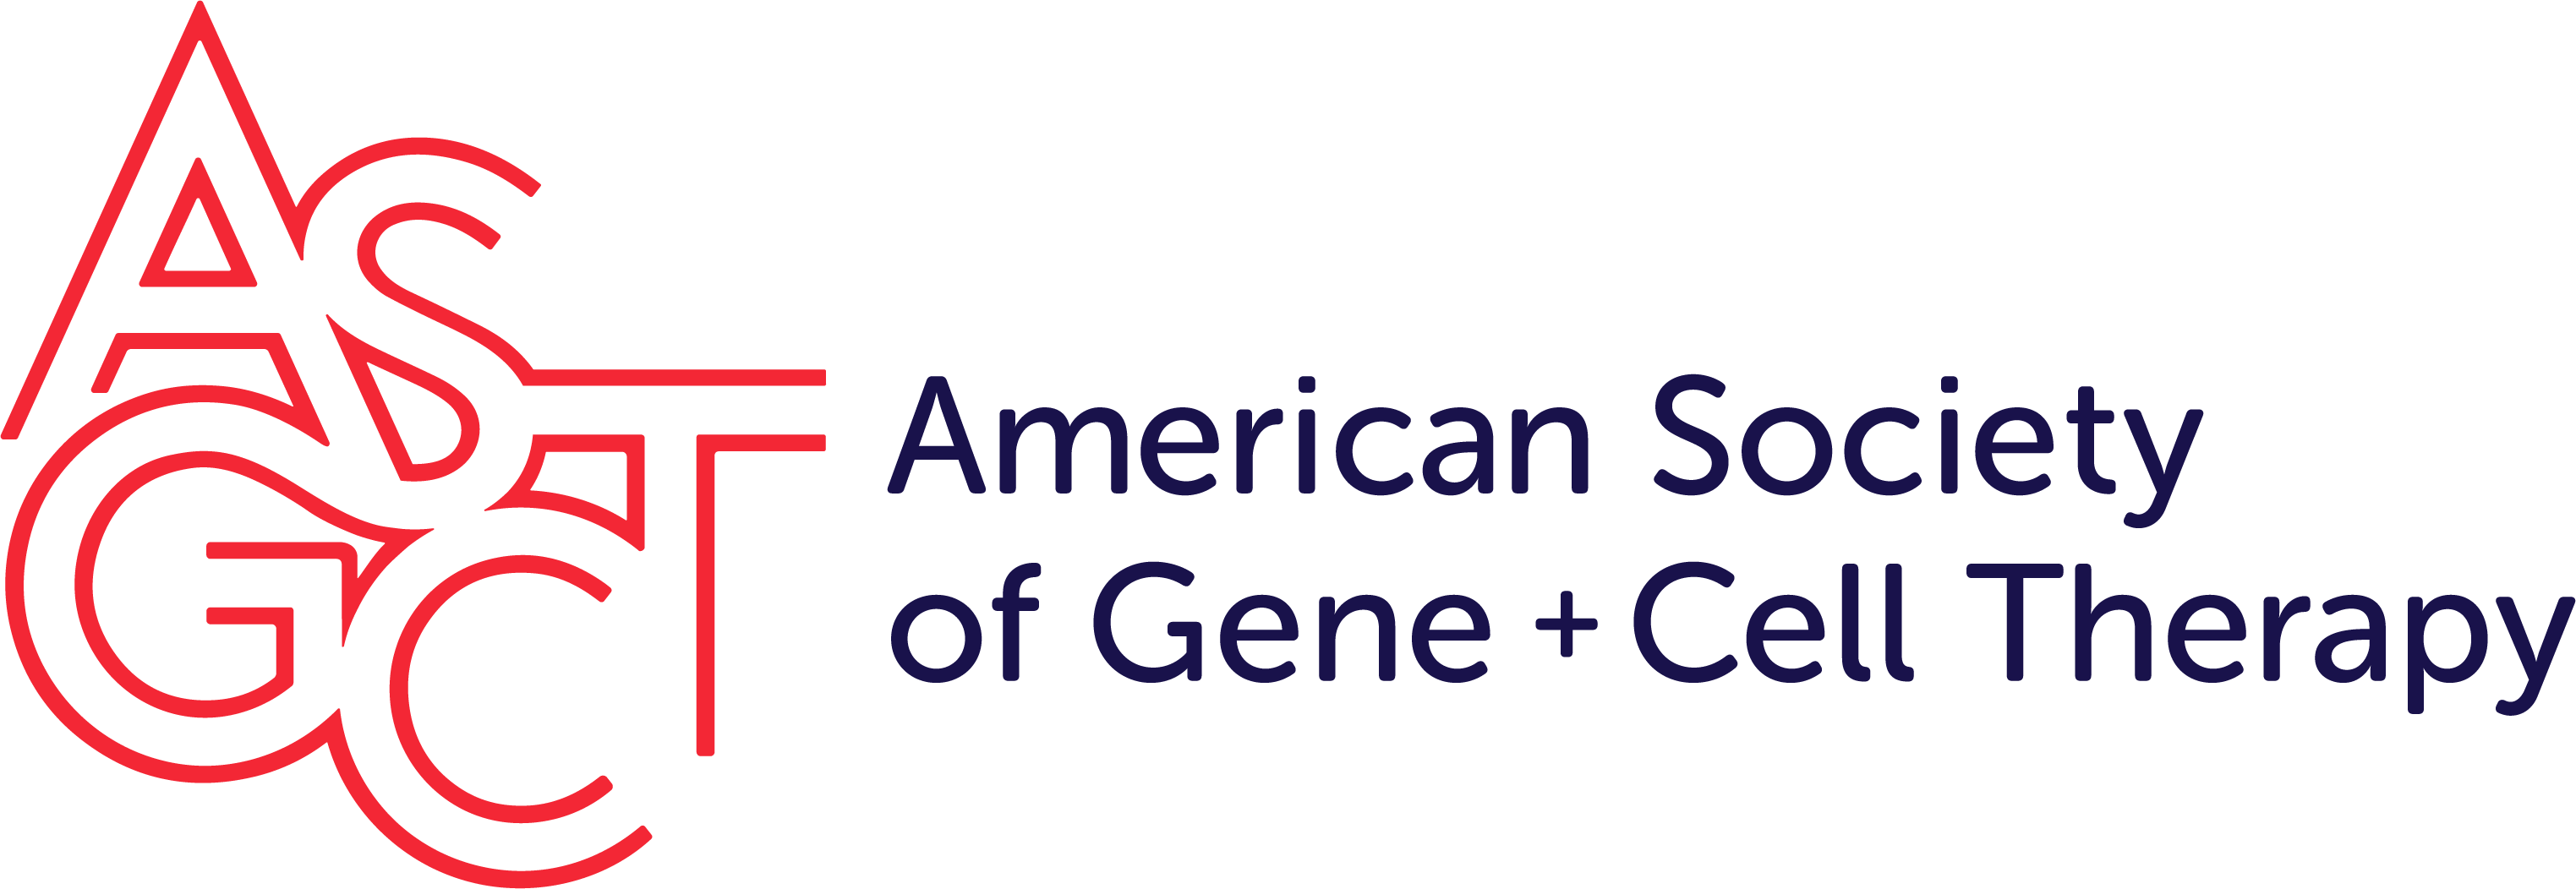 American Society of Gene and Cell Therapy